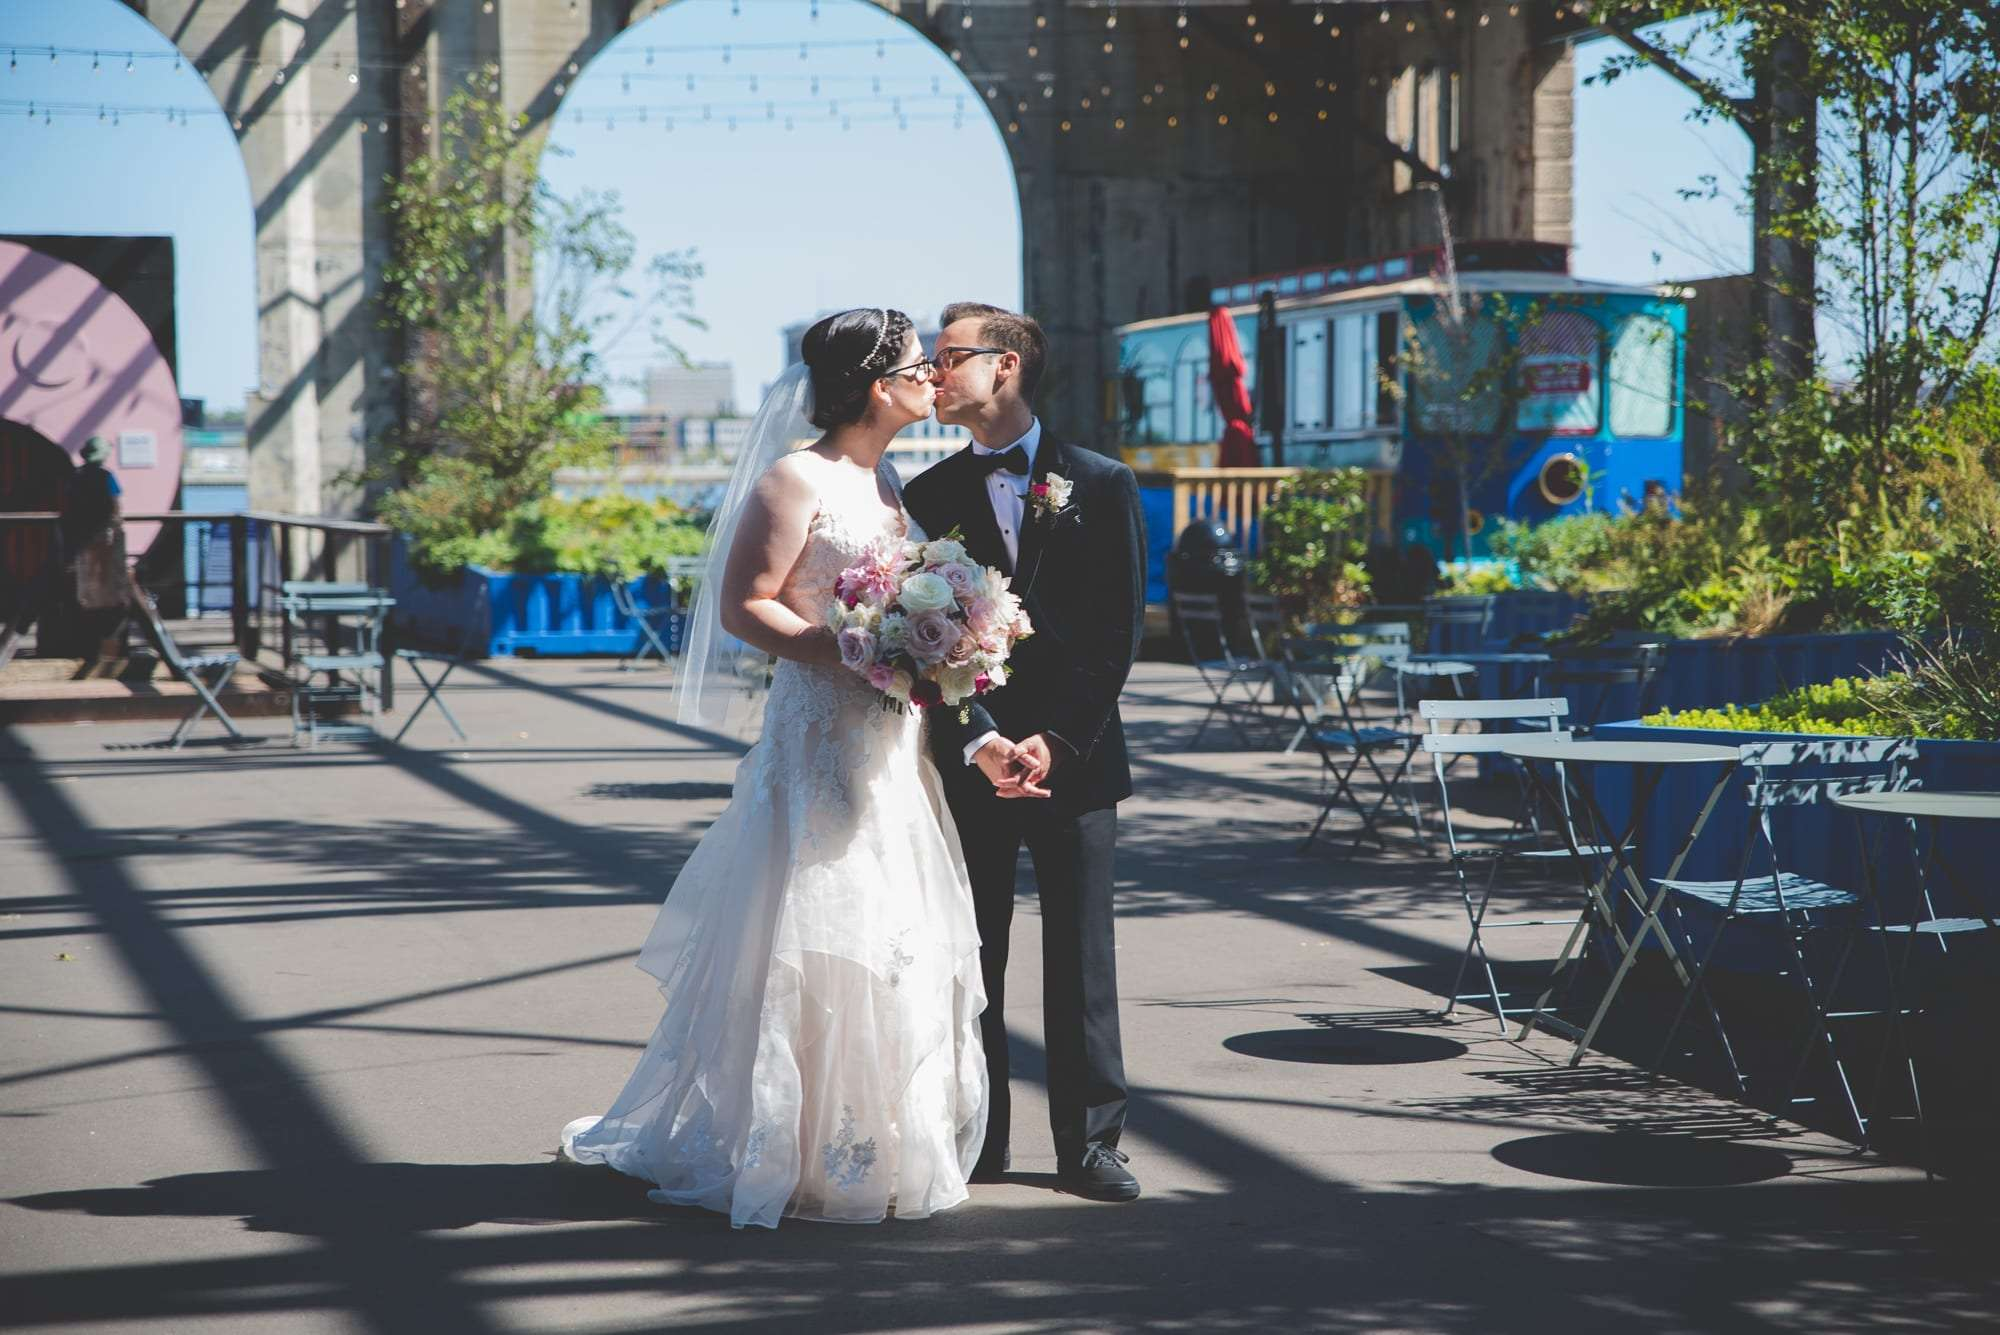 Wedding photos at cherry street pier philadelphia cool wedding locations